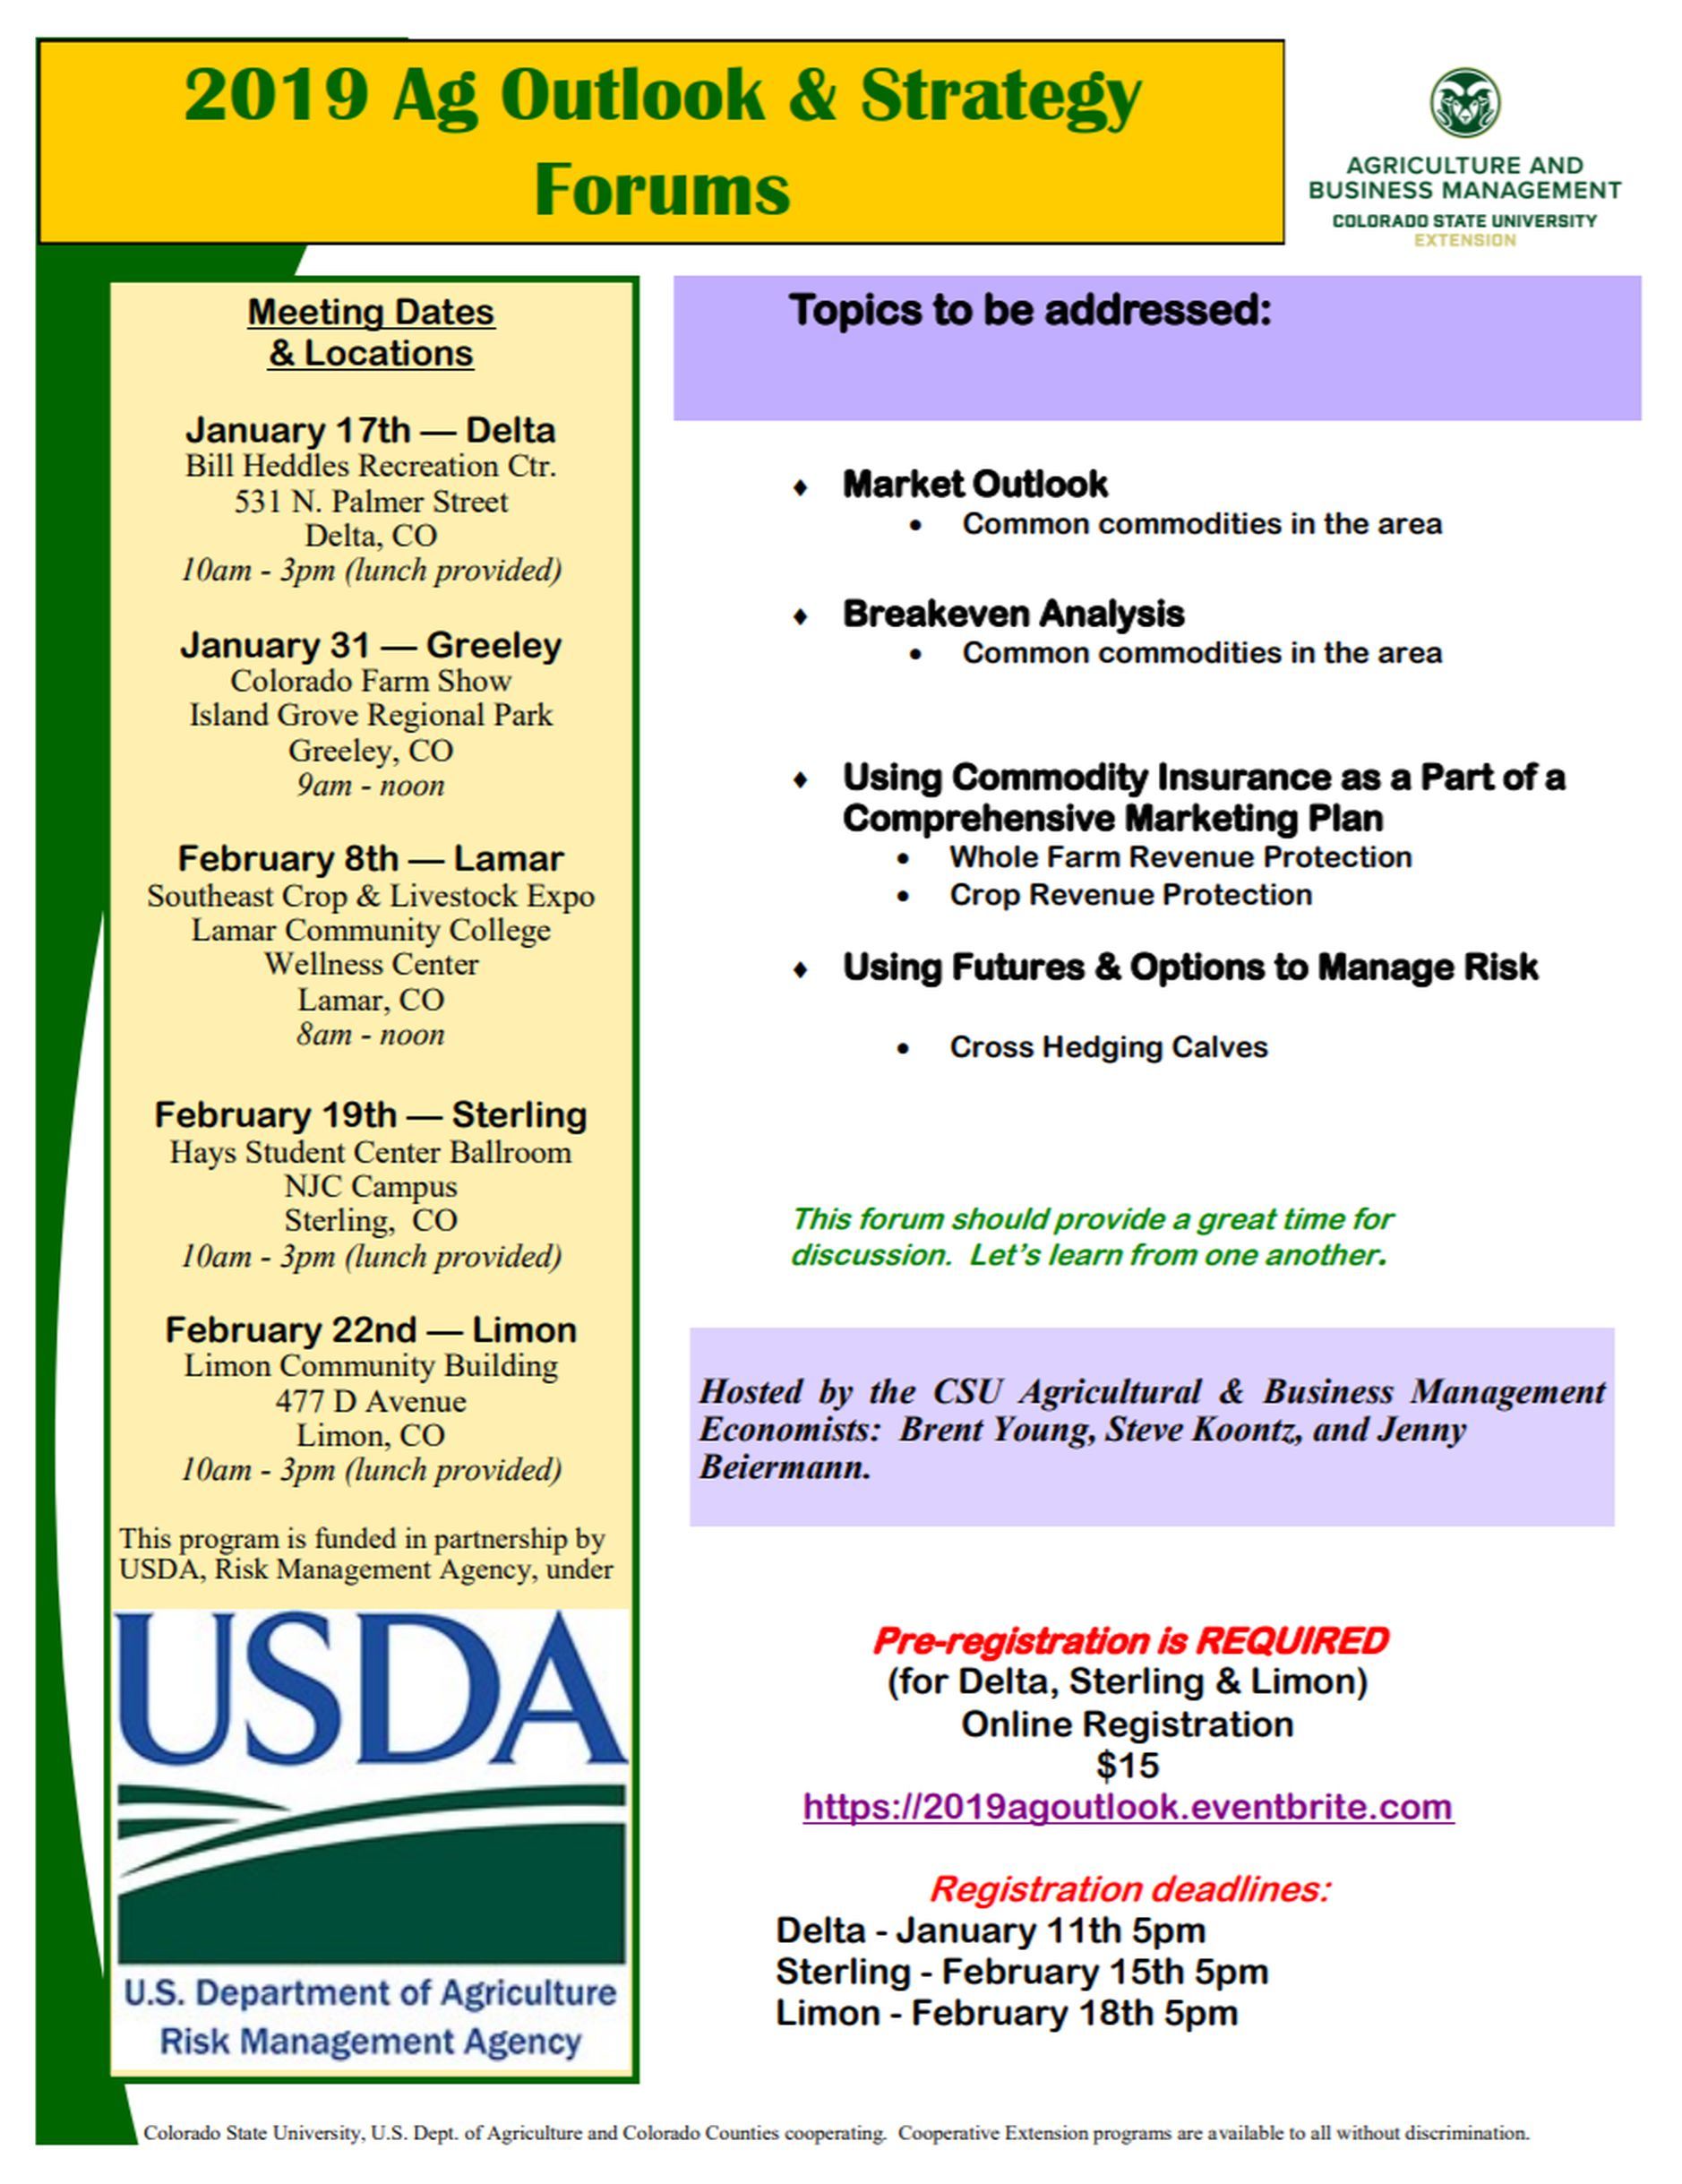 01-18-19 2019 Ag Outlook & Strategy Forums slated for Jan